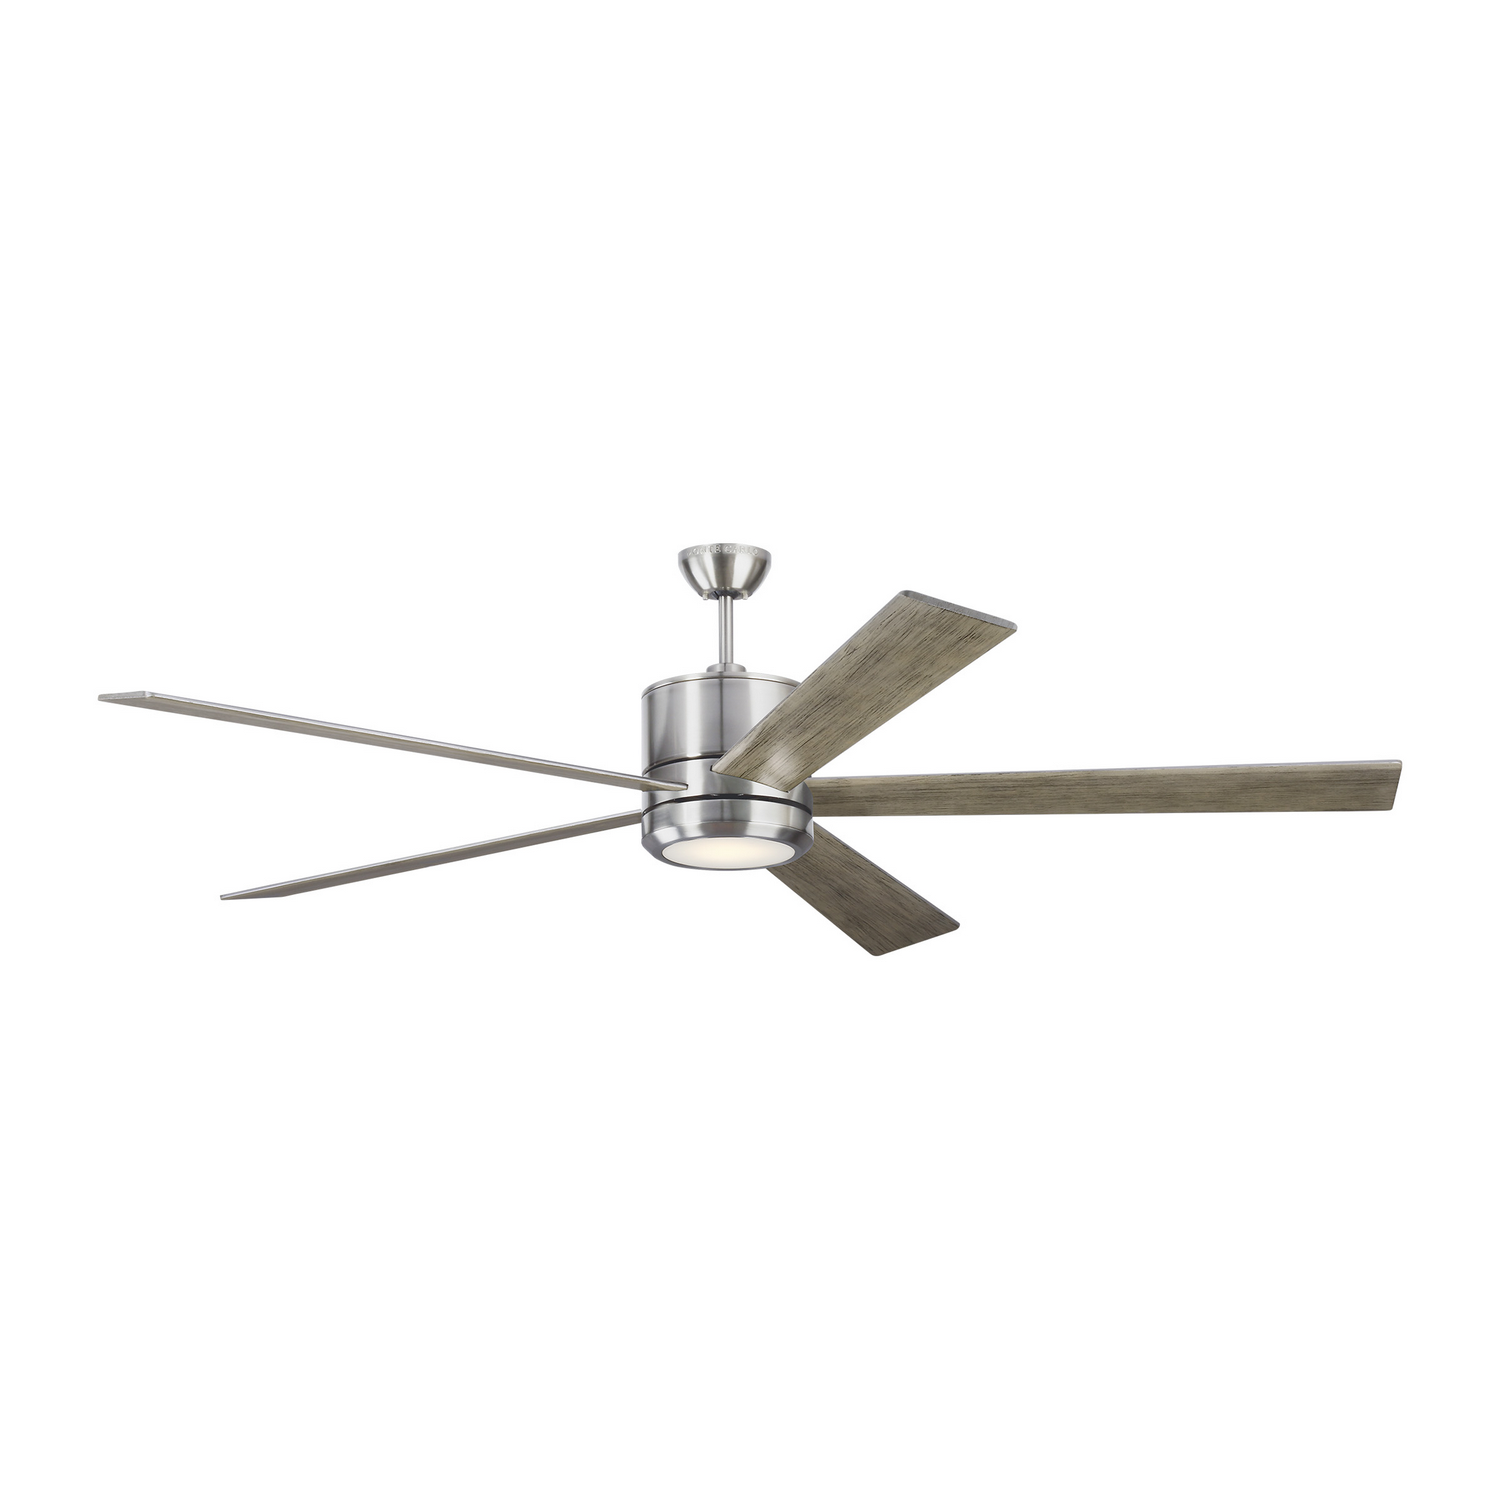 72 inchCeiling Fan from the Vision 72 collection by Monte Carlo 5VMR72BSD